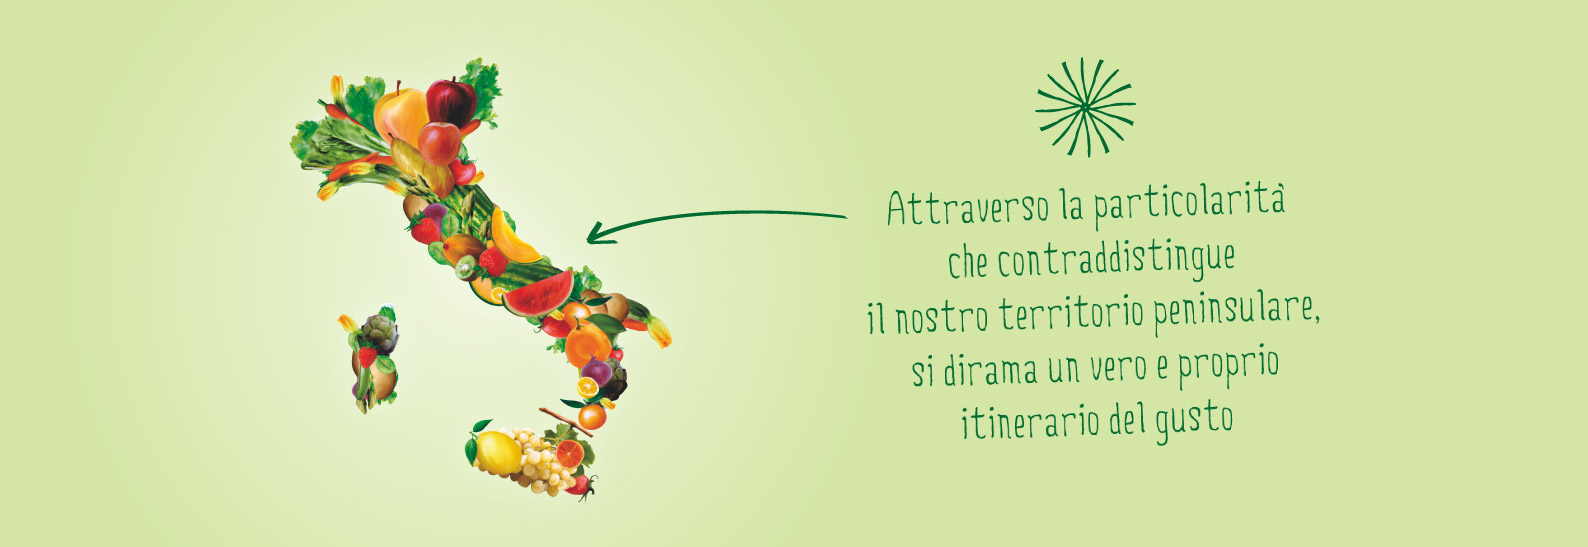 agrinsieme-itinerario-del-gusto